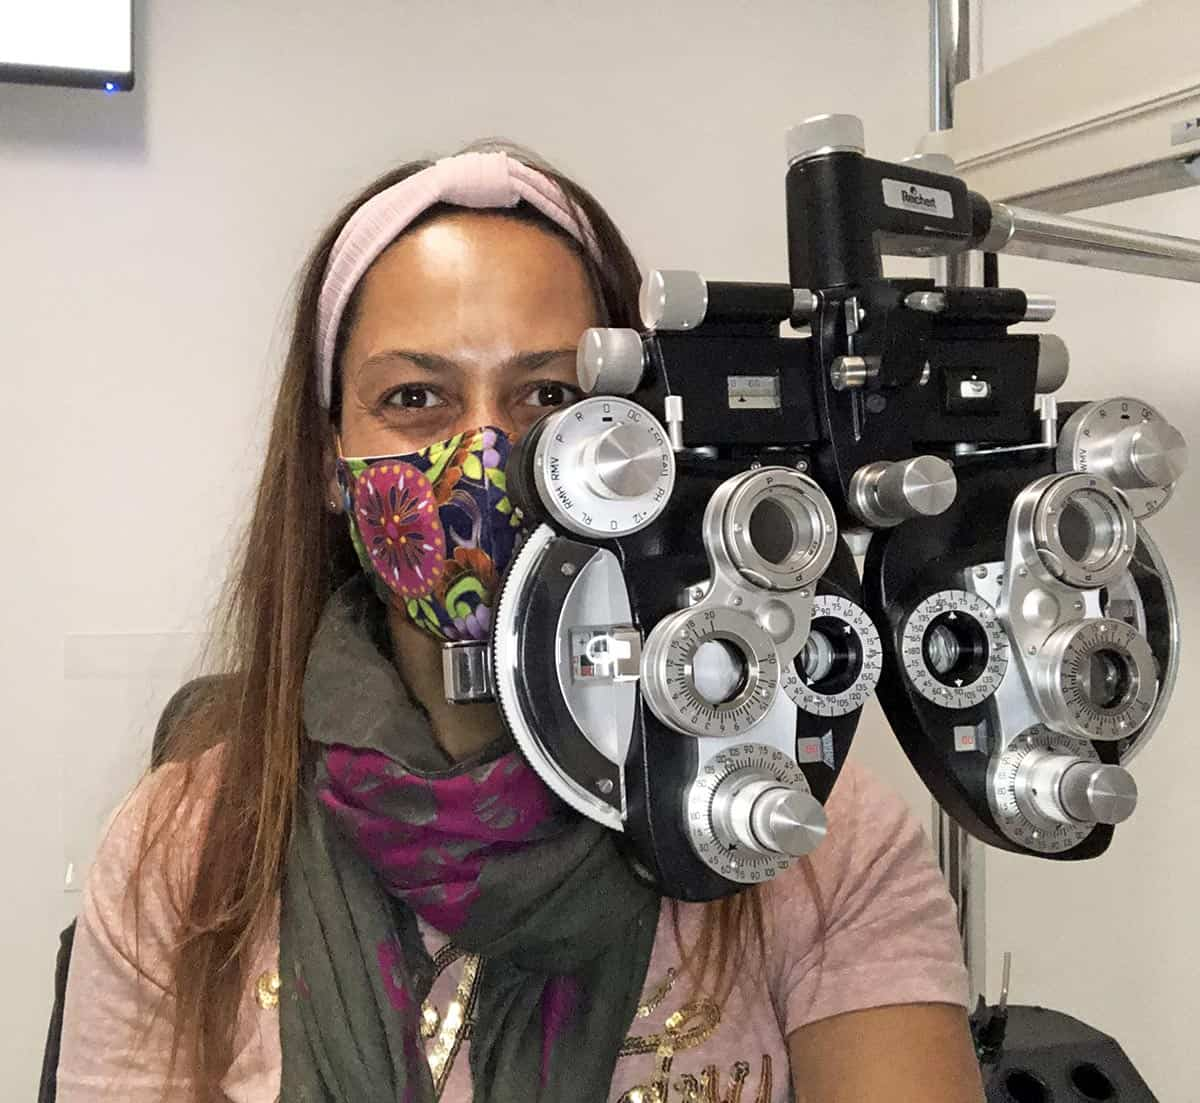 Christel at the eye doctor